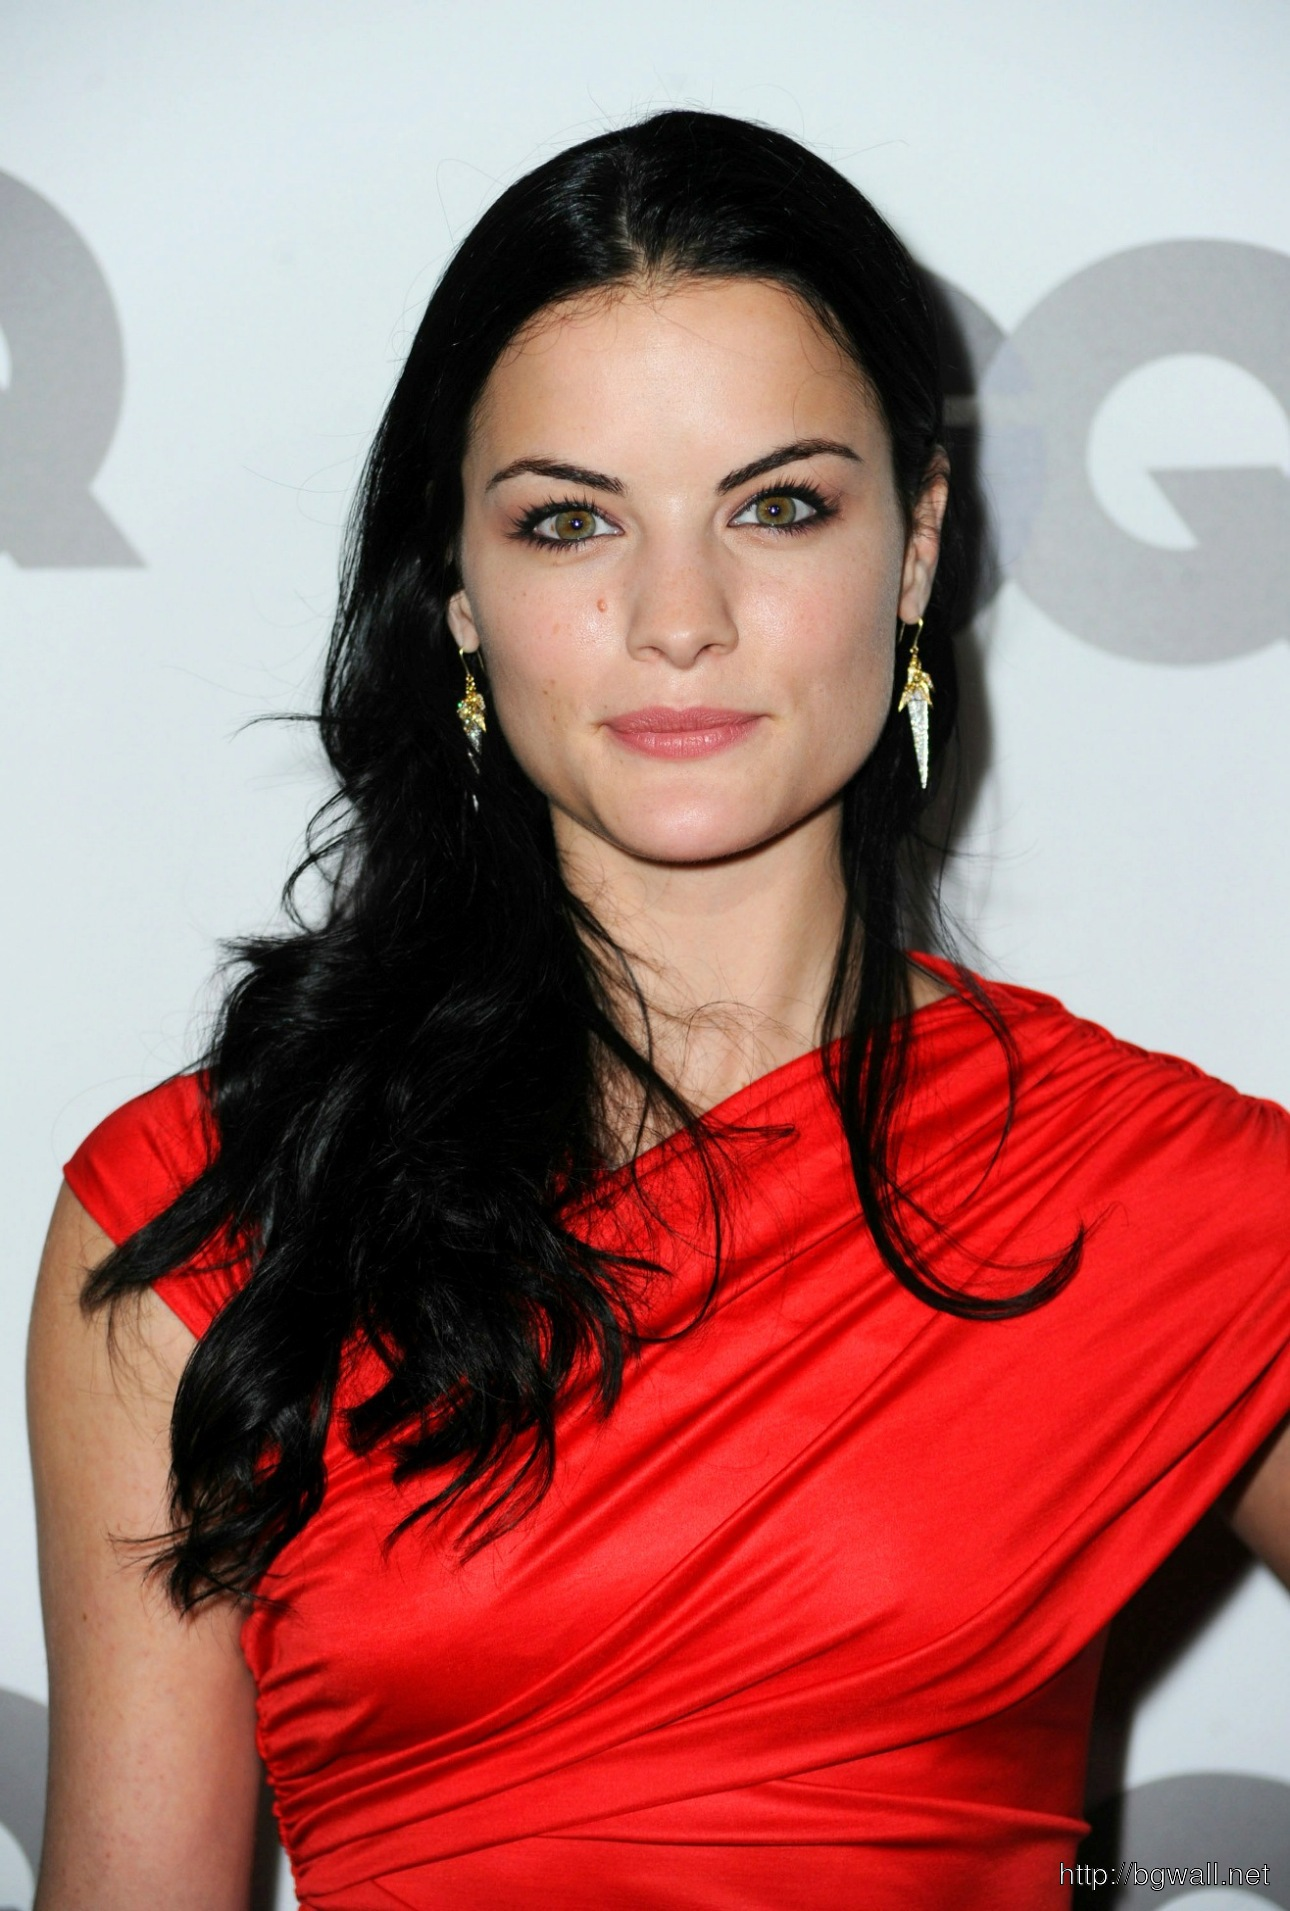 Jaimie Alexander Gq 2010 Men Of The Year Party 17 Nov 2010 Red Full Size